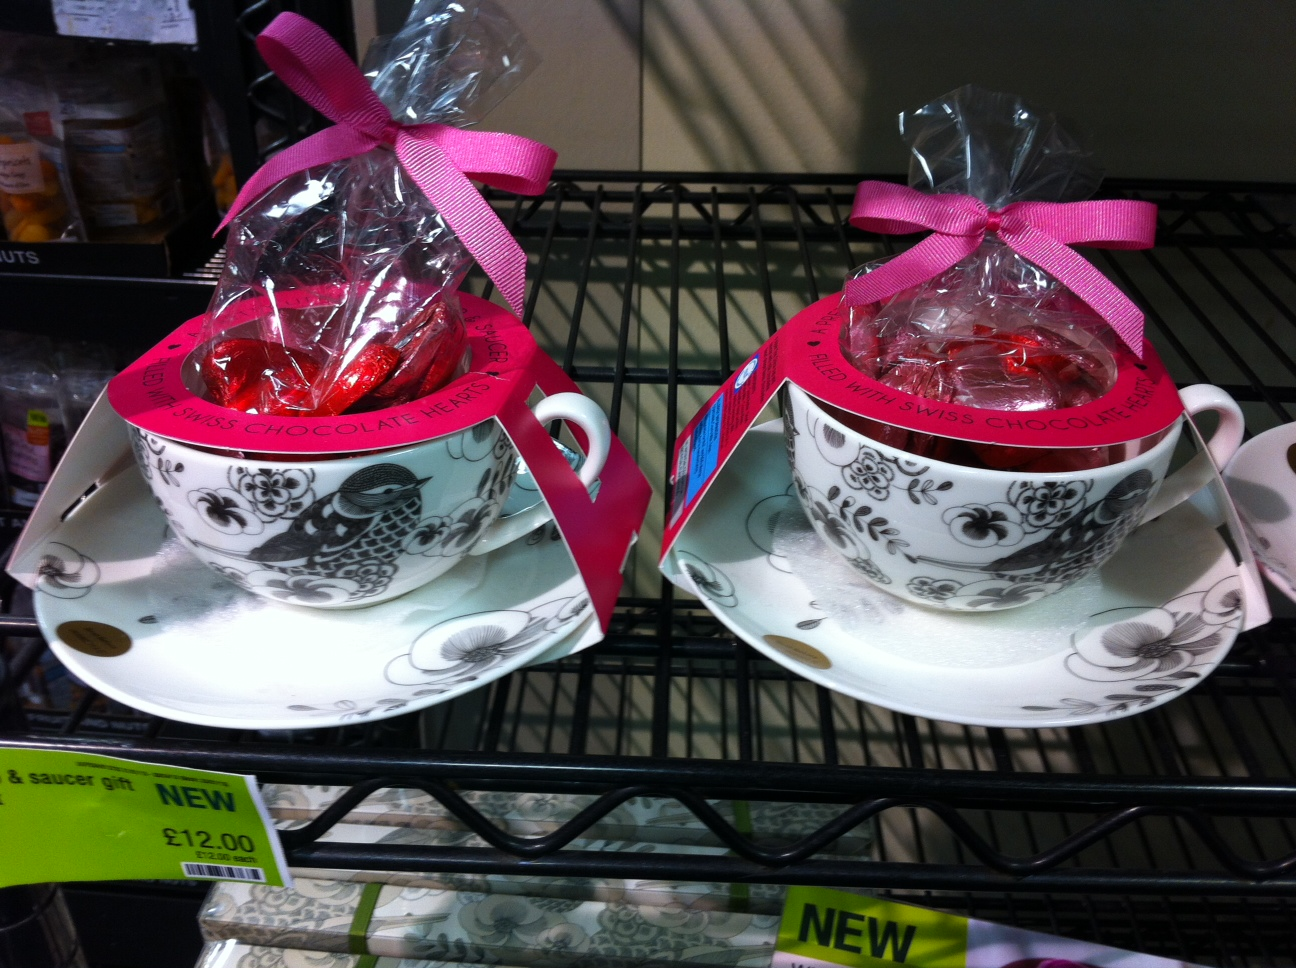 Some Last Minute (UK) Mother's Day Gift Ideas from Your Local Marks & Spencer